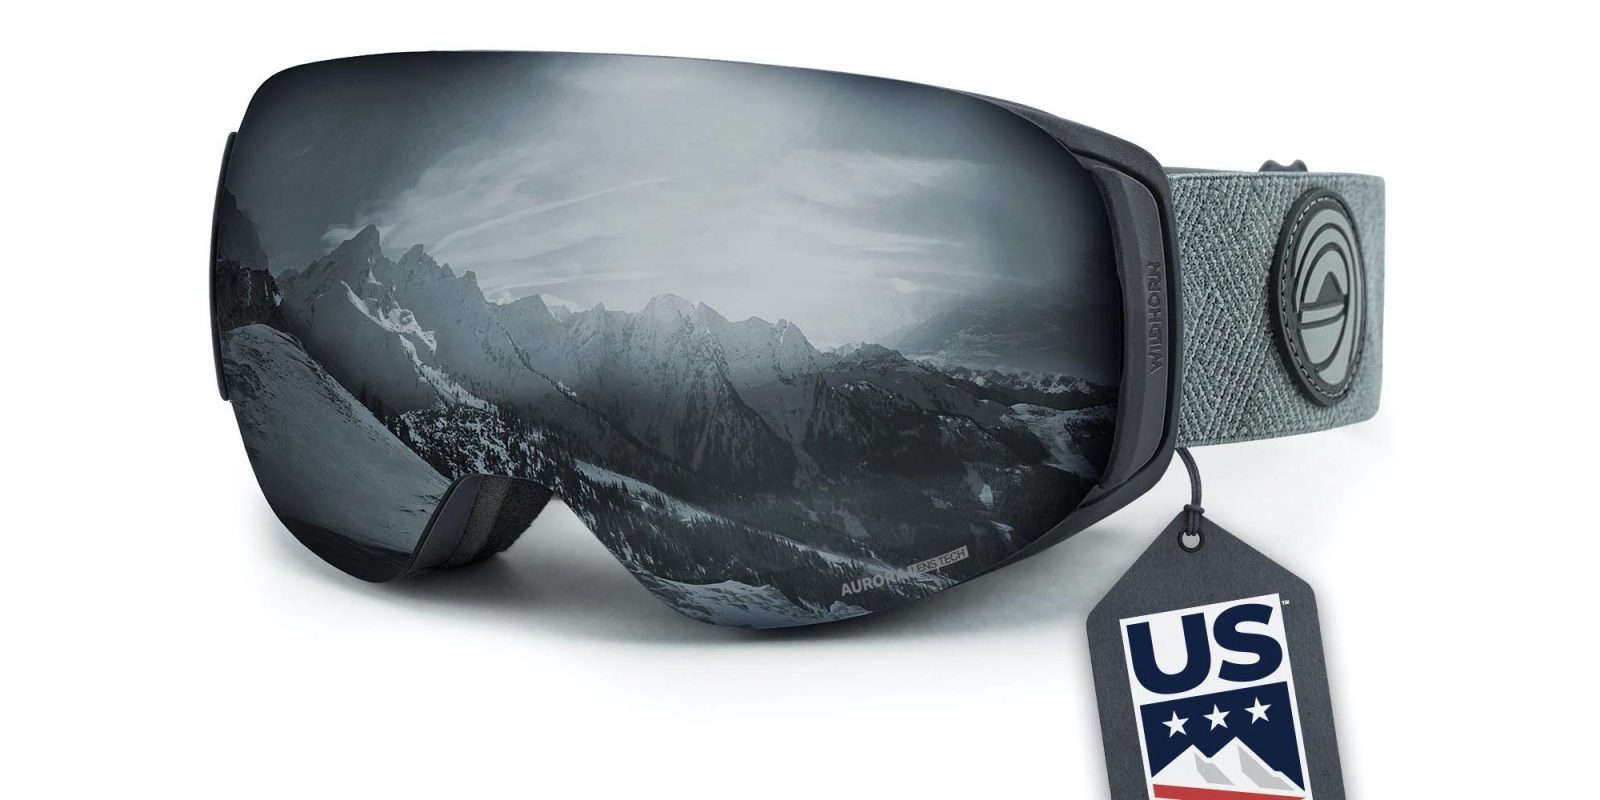 Add a pair of Olympic-grade ski goggles to your winter bag for $30 (Save 50%)